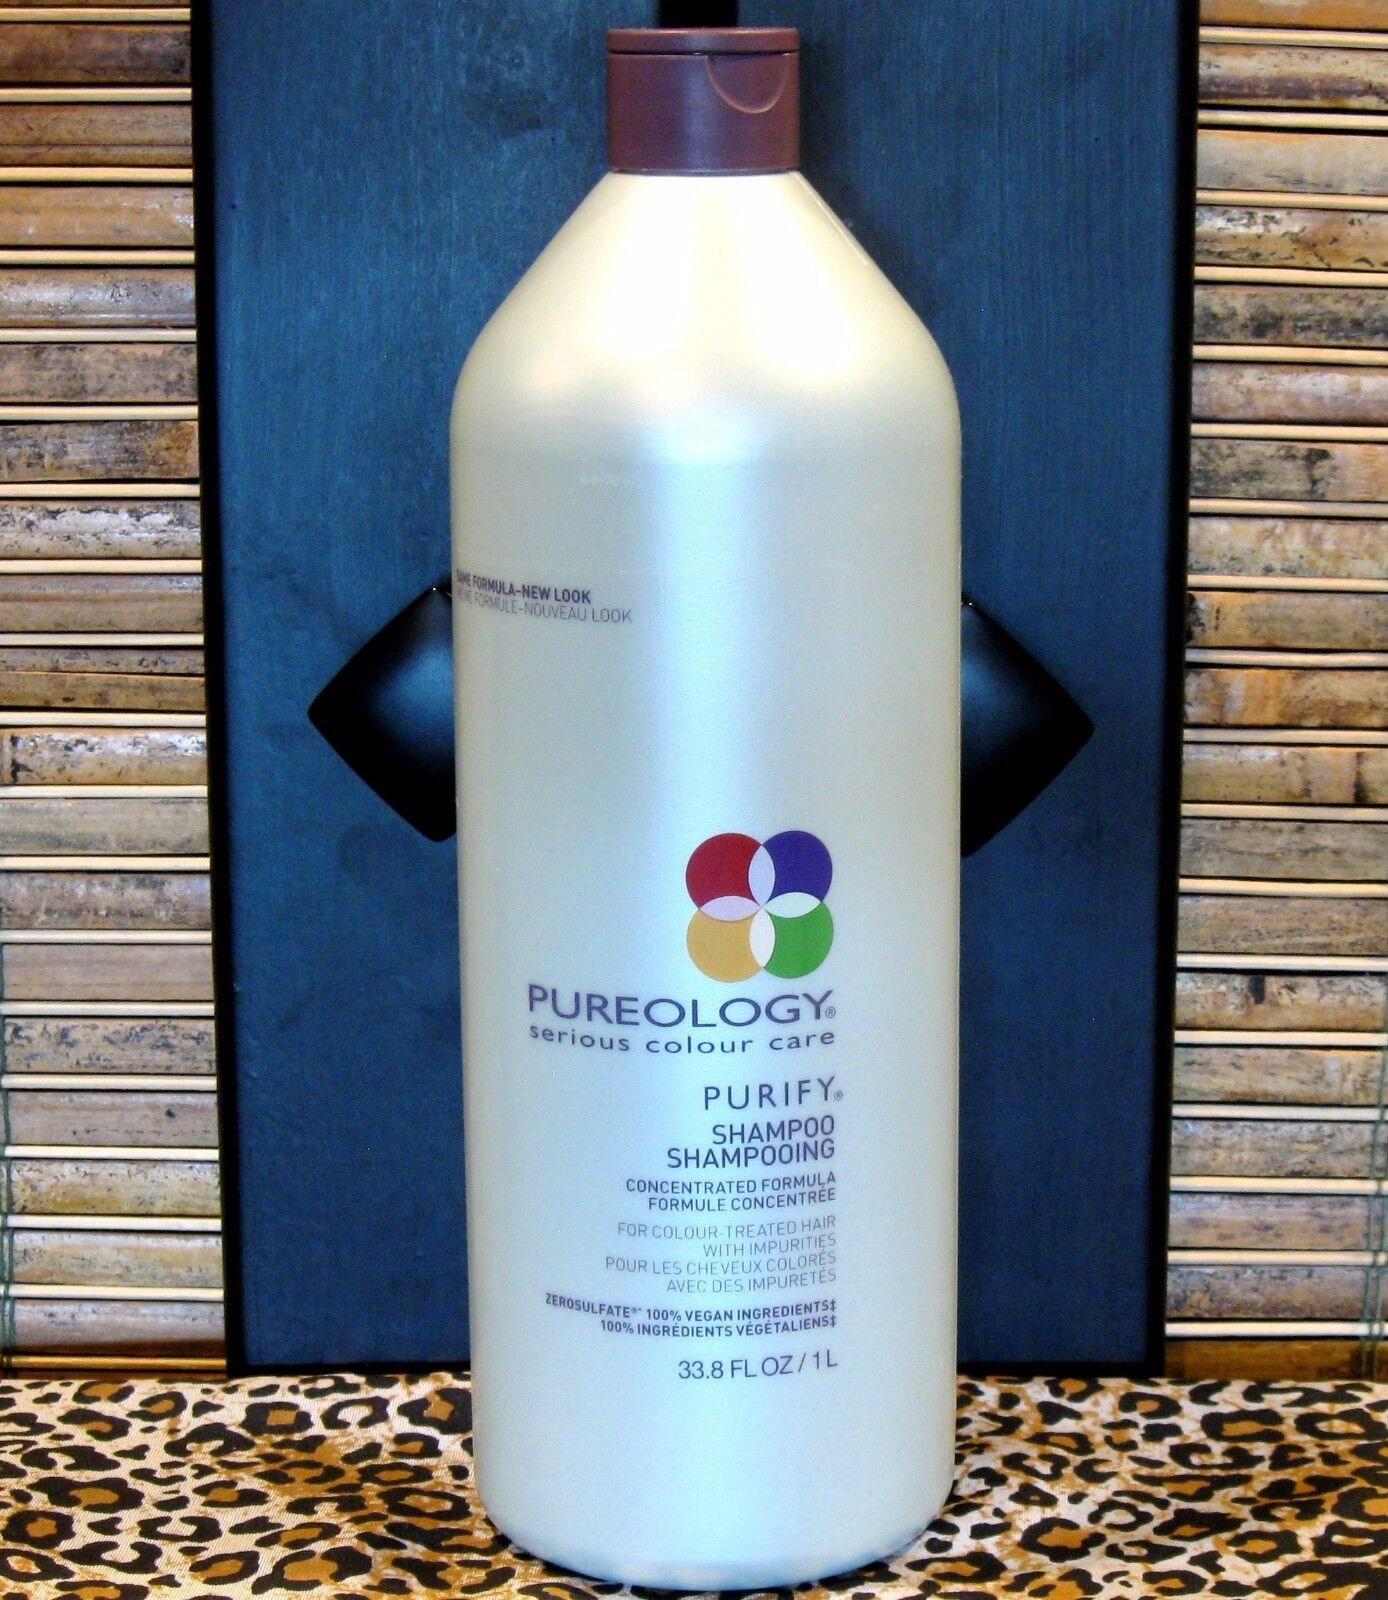 Pureology Purify Shampoo 33.8 oz Liter Sulfate Free Clarify Removes Build Up